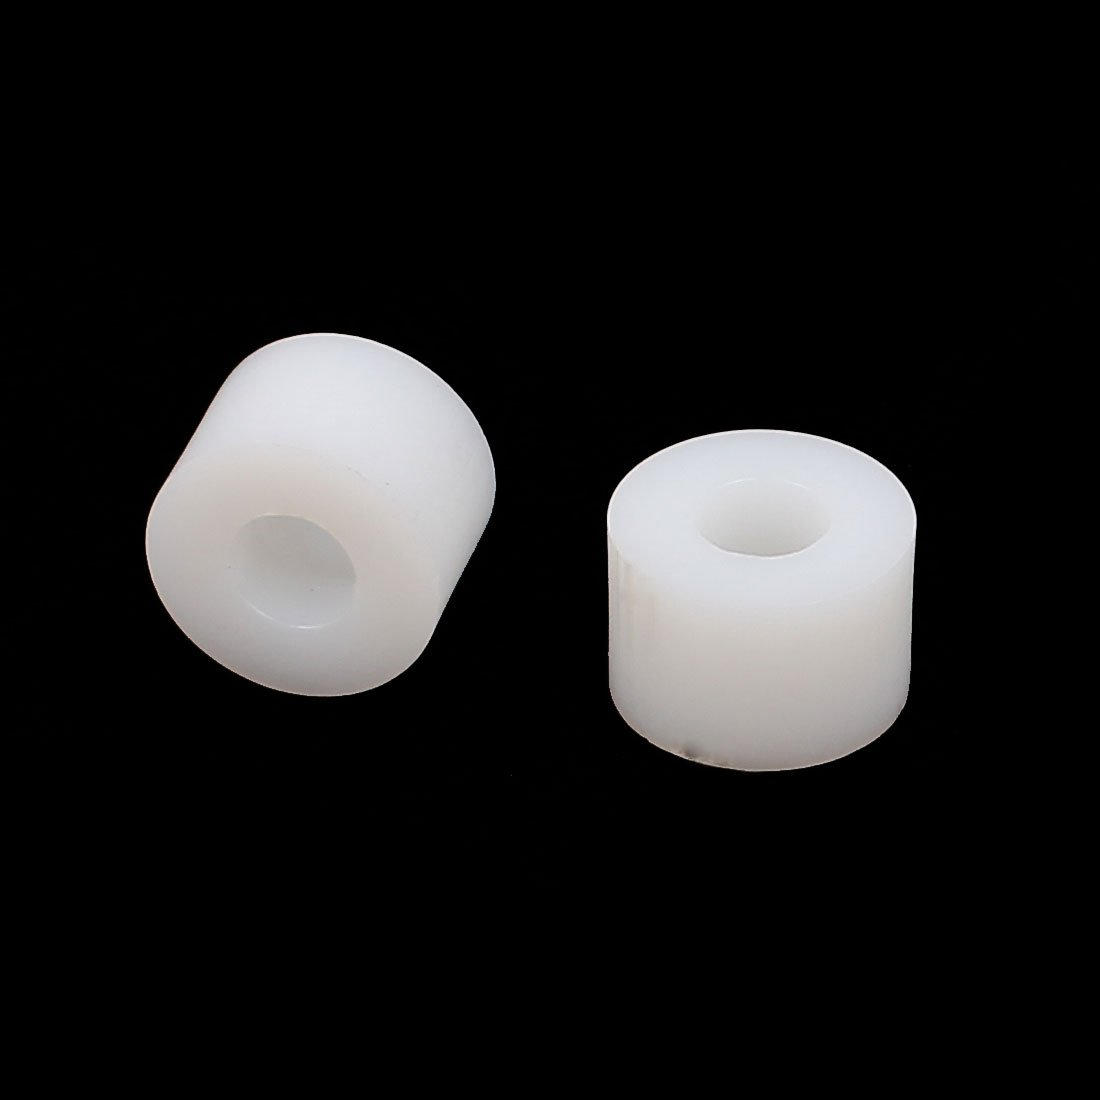 uxcell Plastic Round Non-Threaded Column Standoff Support Spacer Washer 12x8mm 40pcs White